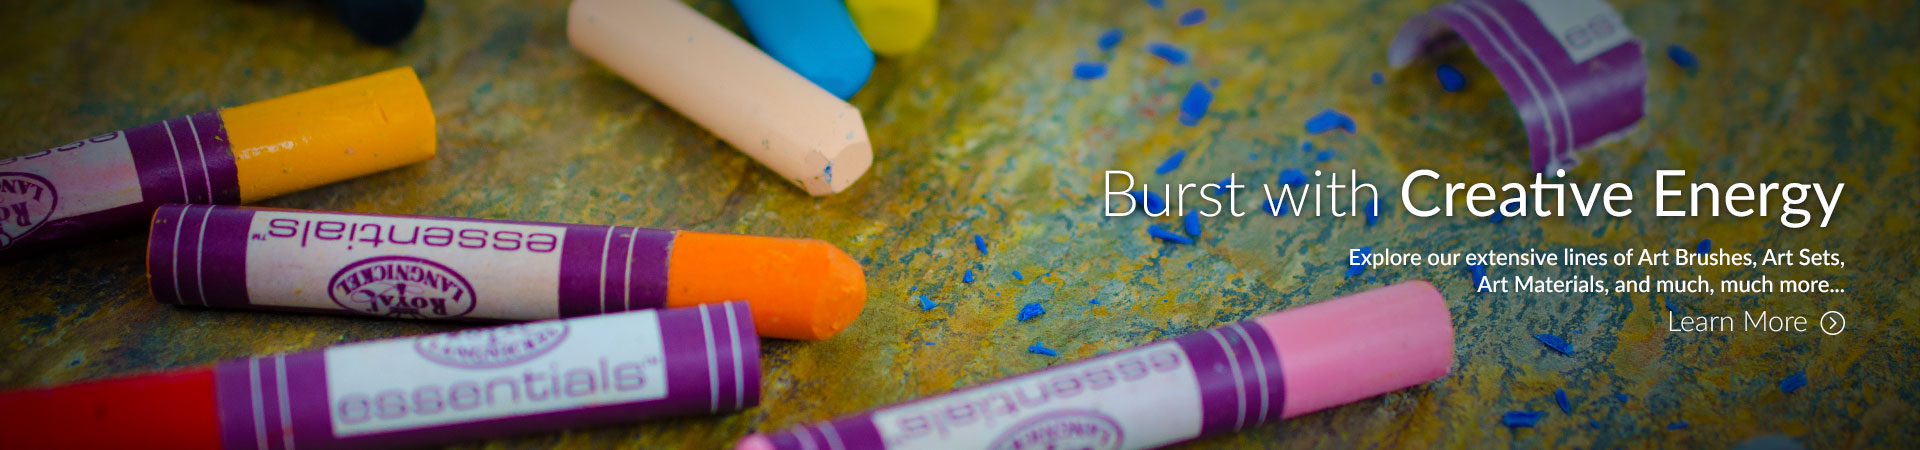 Burst with Creative Energy. Explore our extensive lines of Art Brushes, Art Materials, Art Sets and much more.